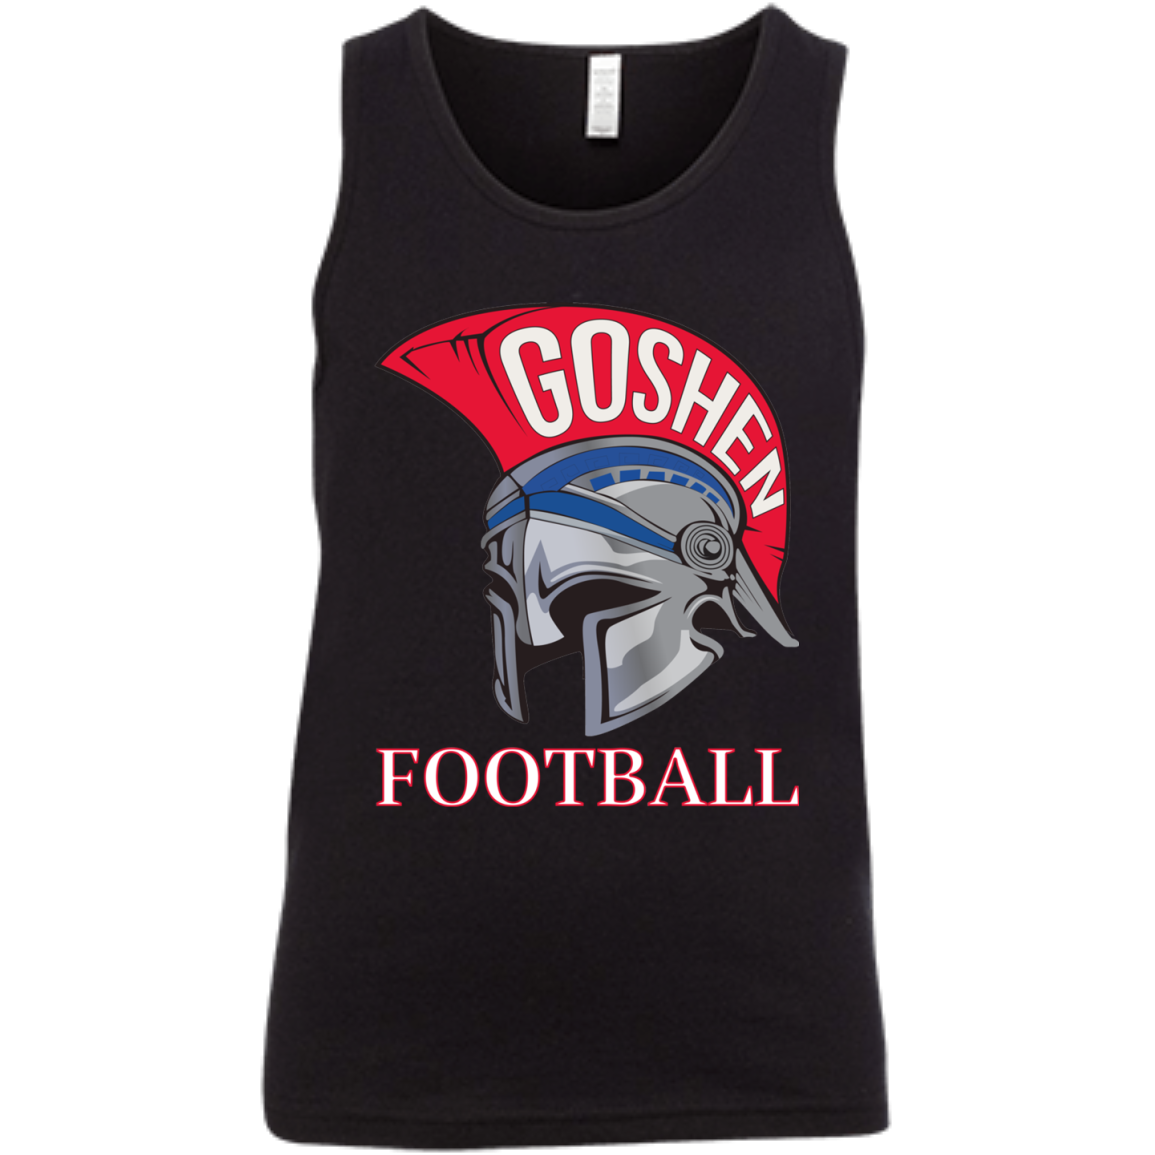 Youth Tank Top - Goshen Youth Football